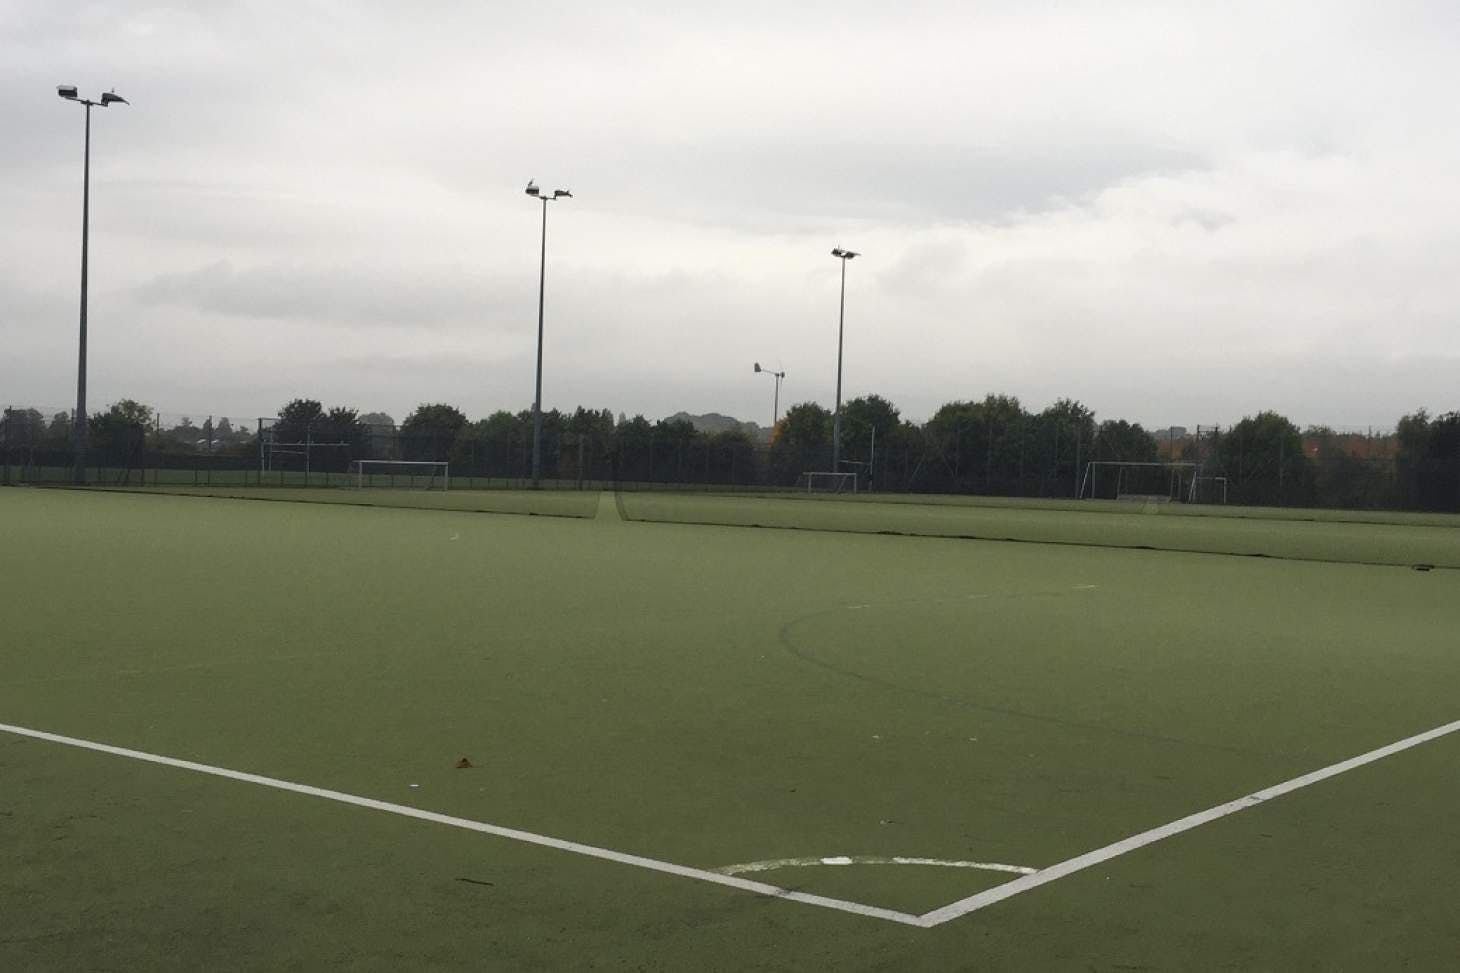 National Church of England Academy 11 a side | Astroturf football pitch